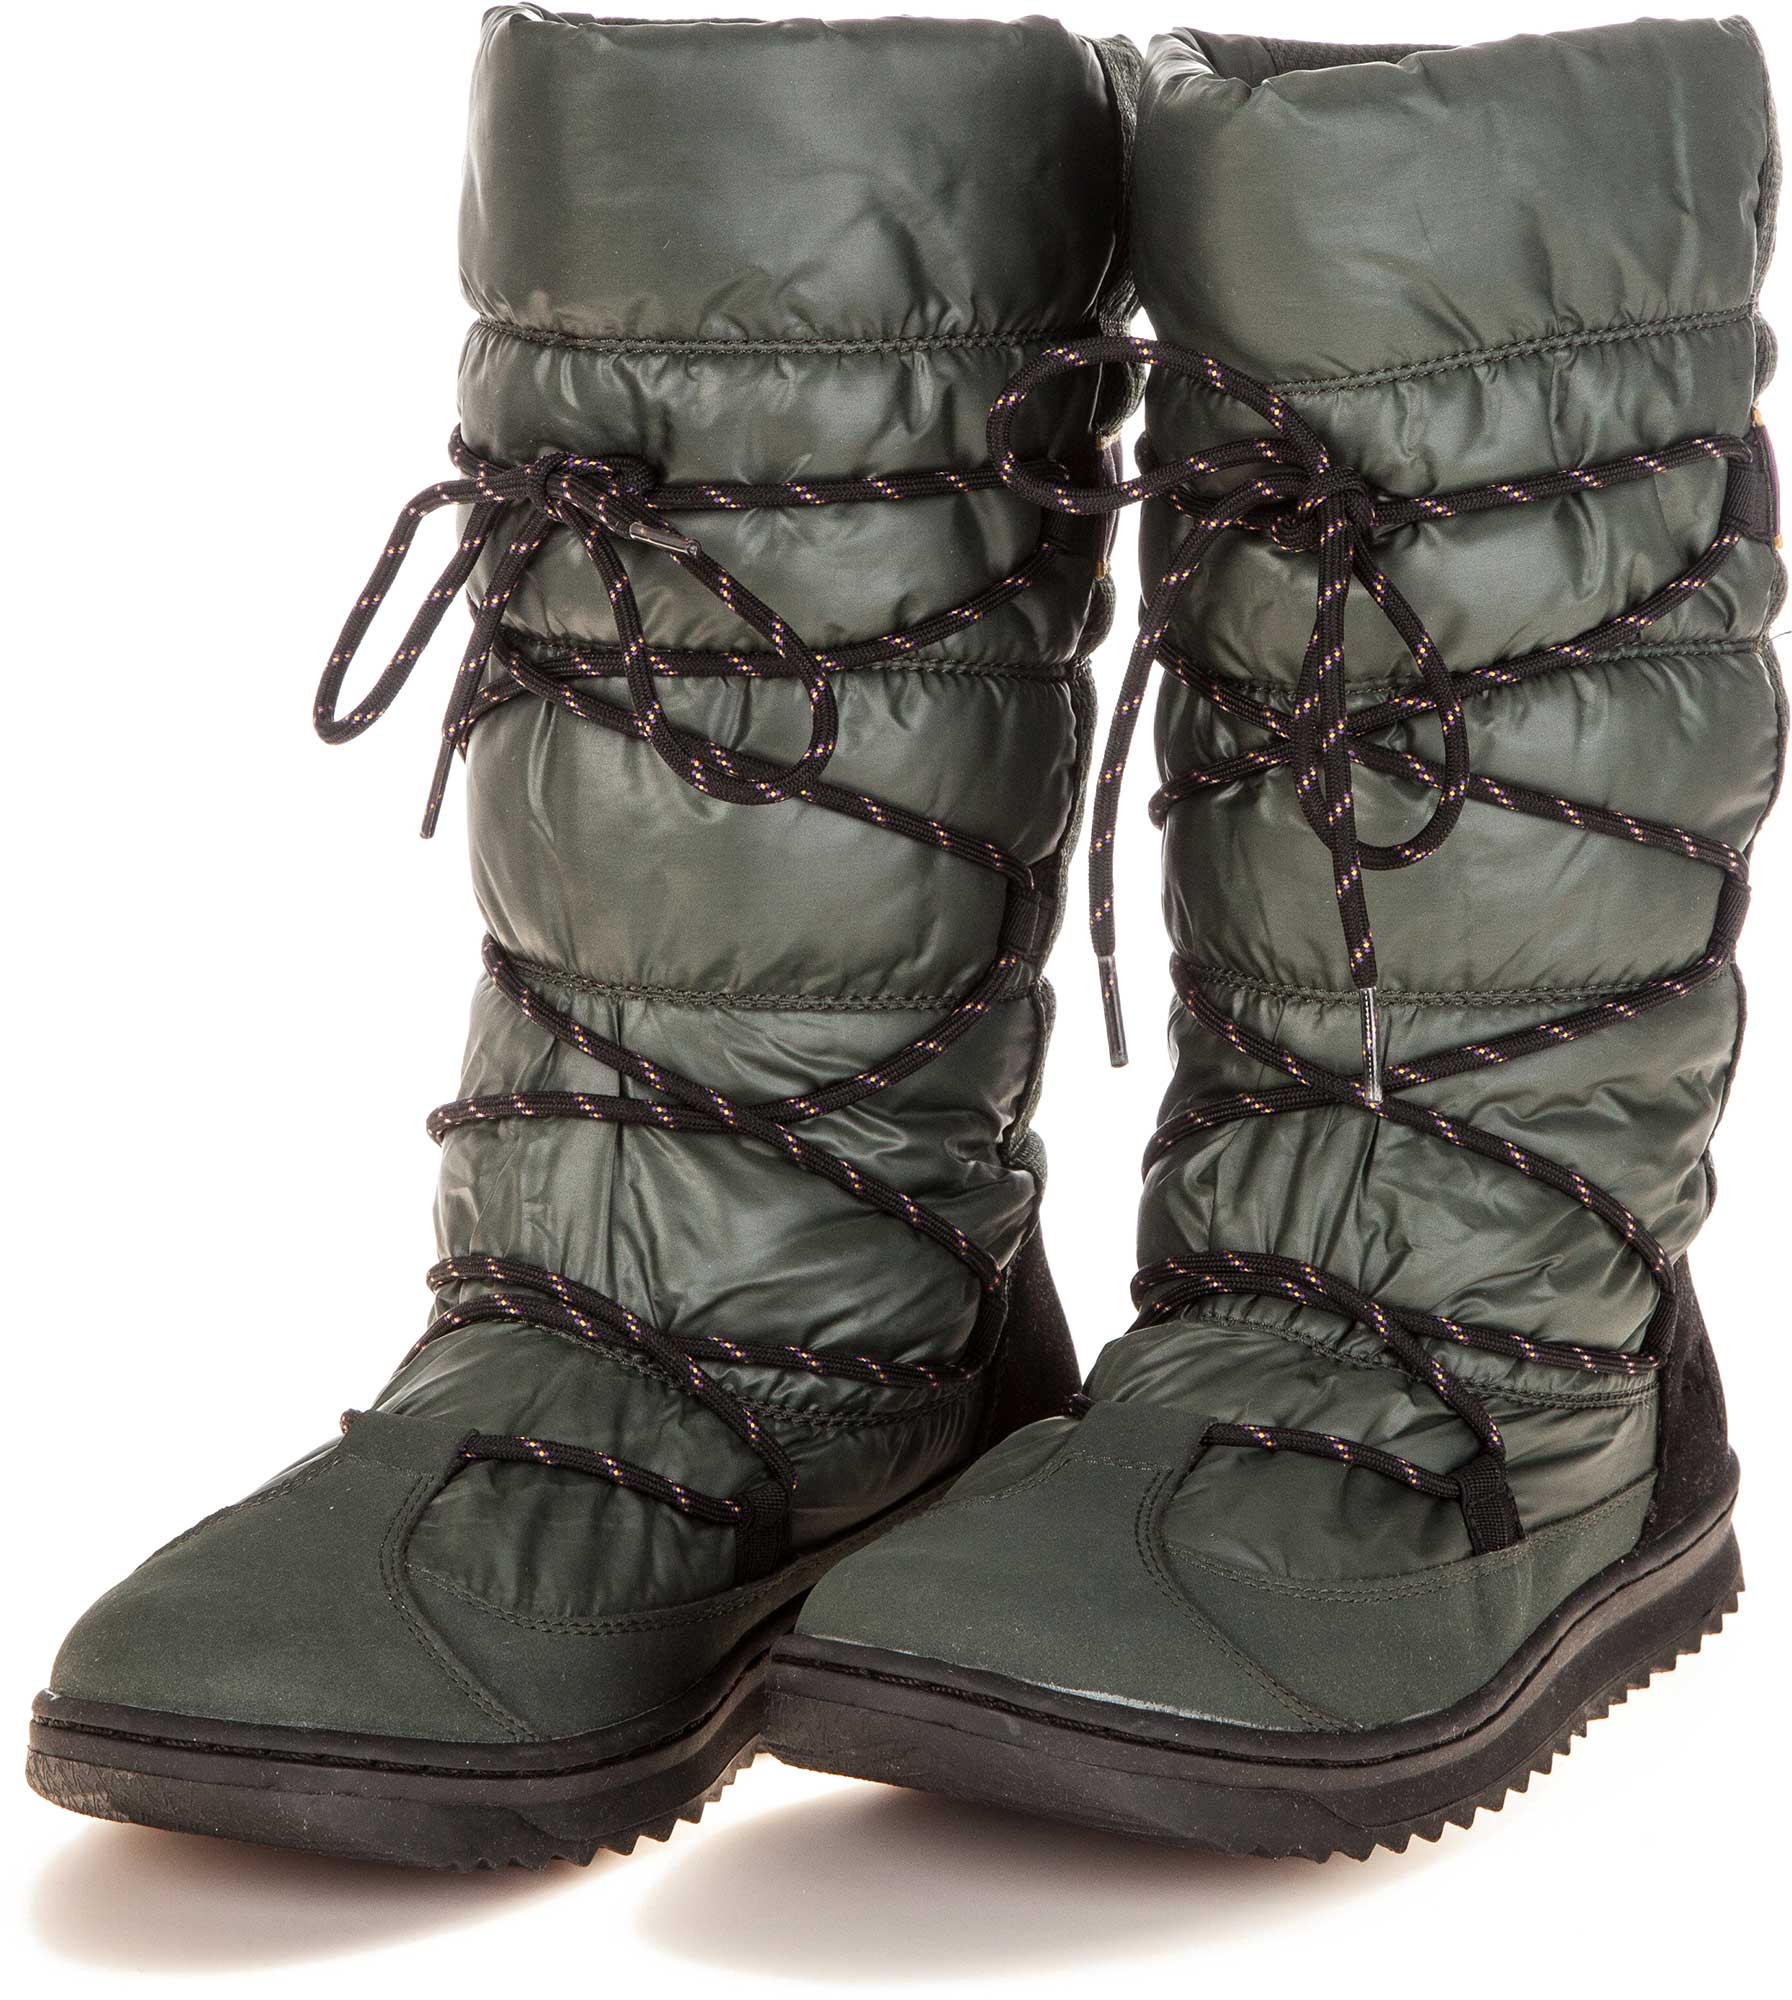 84435160693c59 SNOW NYLON BOOT WNS - winter shoes